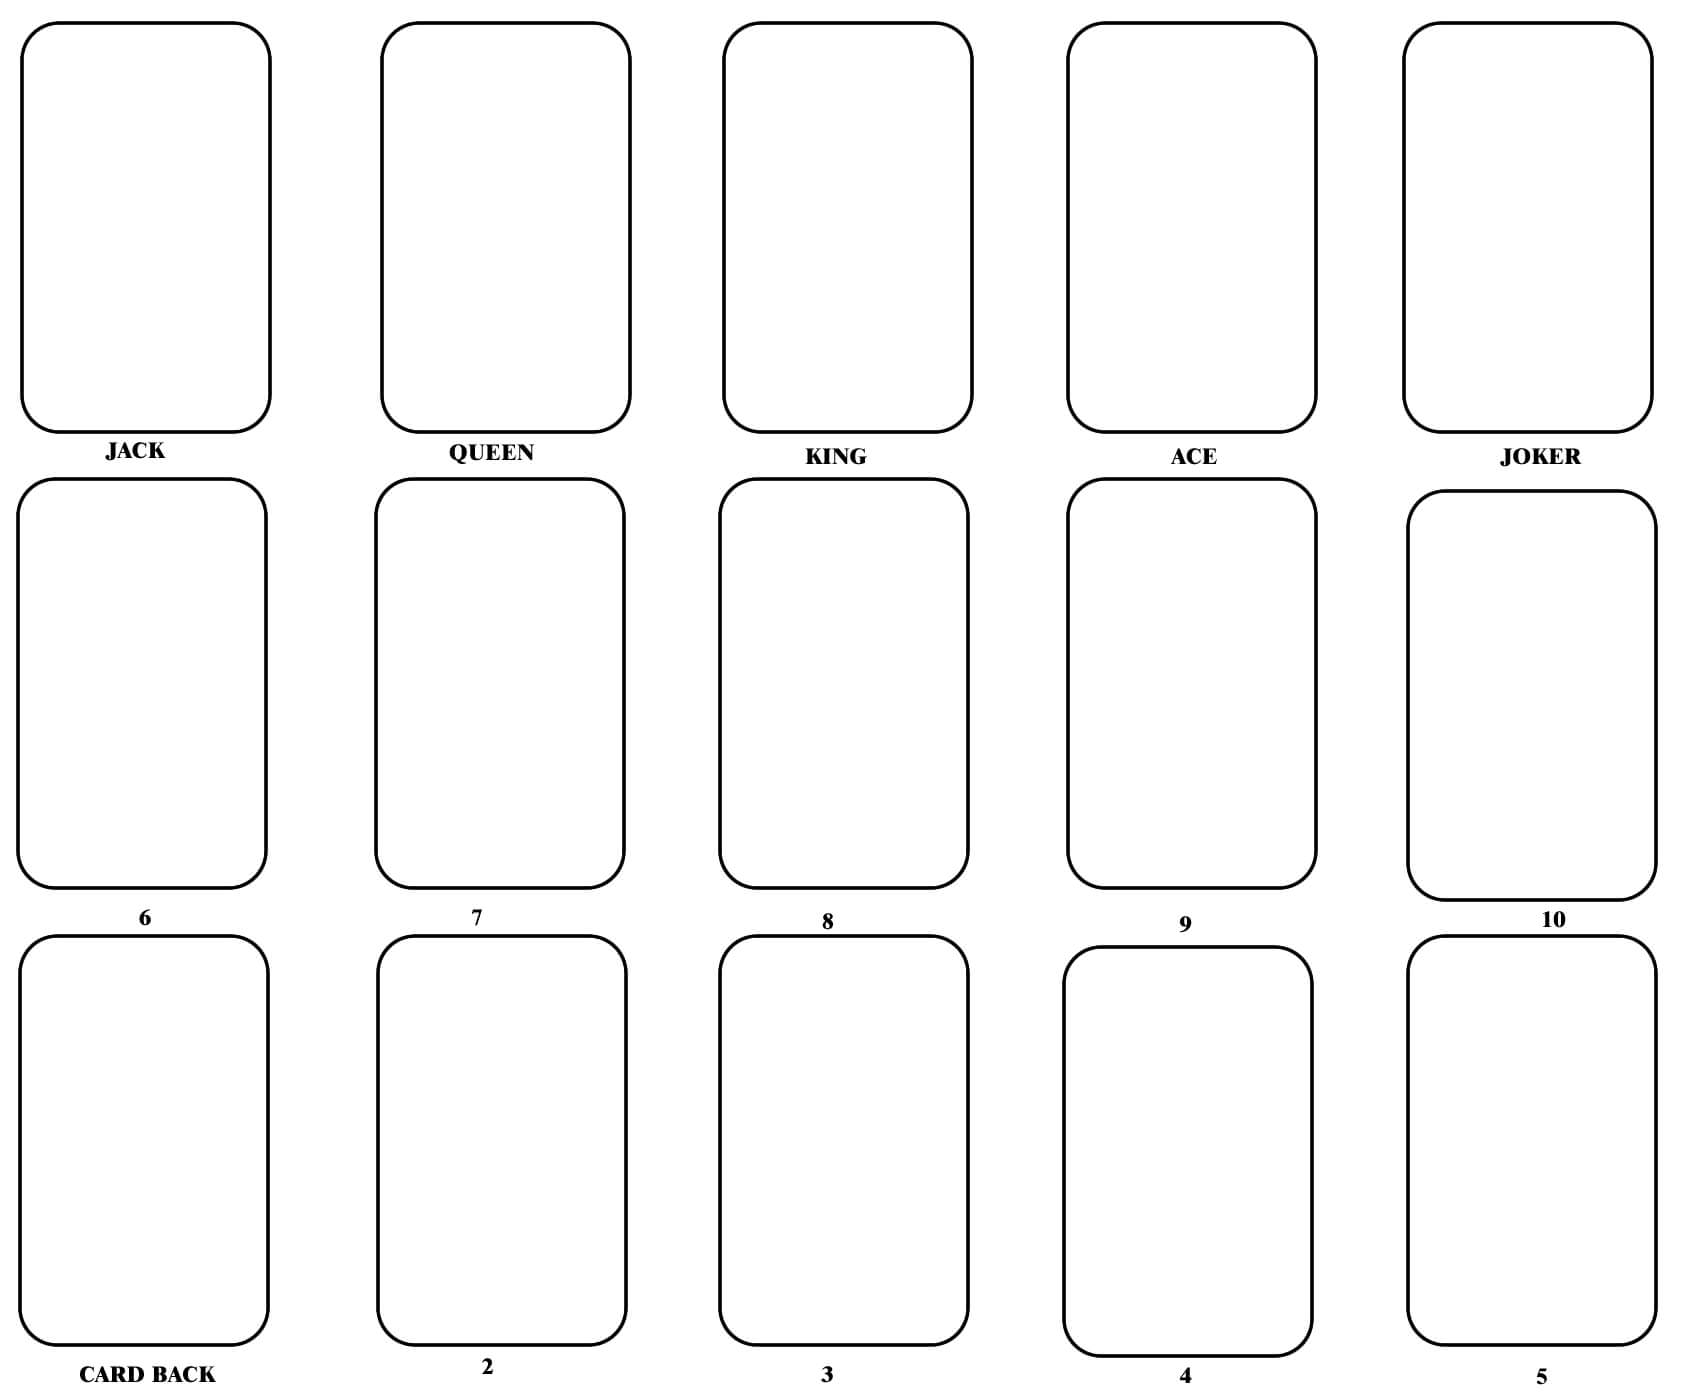 Blank+Playing+Card+Template | Flash Card Template, Blank With Regard To Deck Of Cards Template